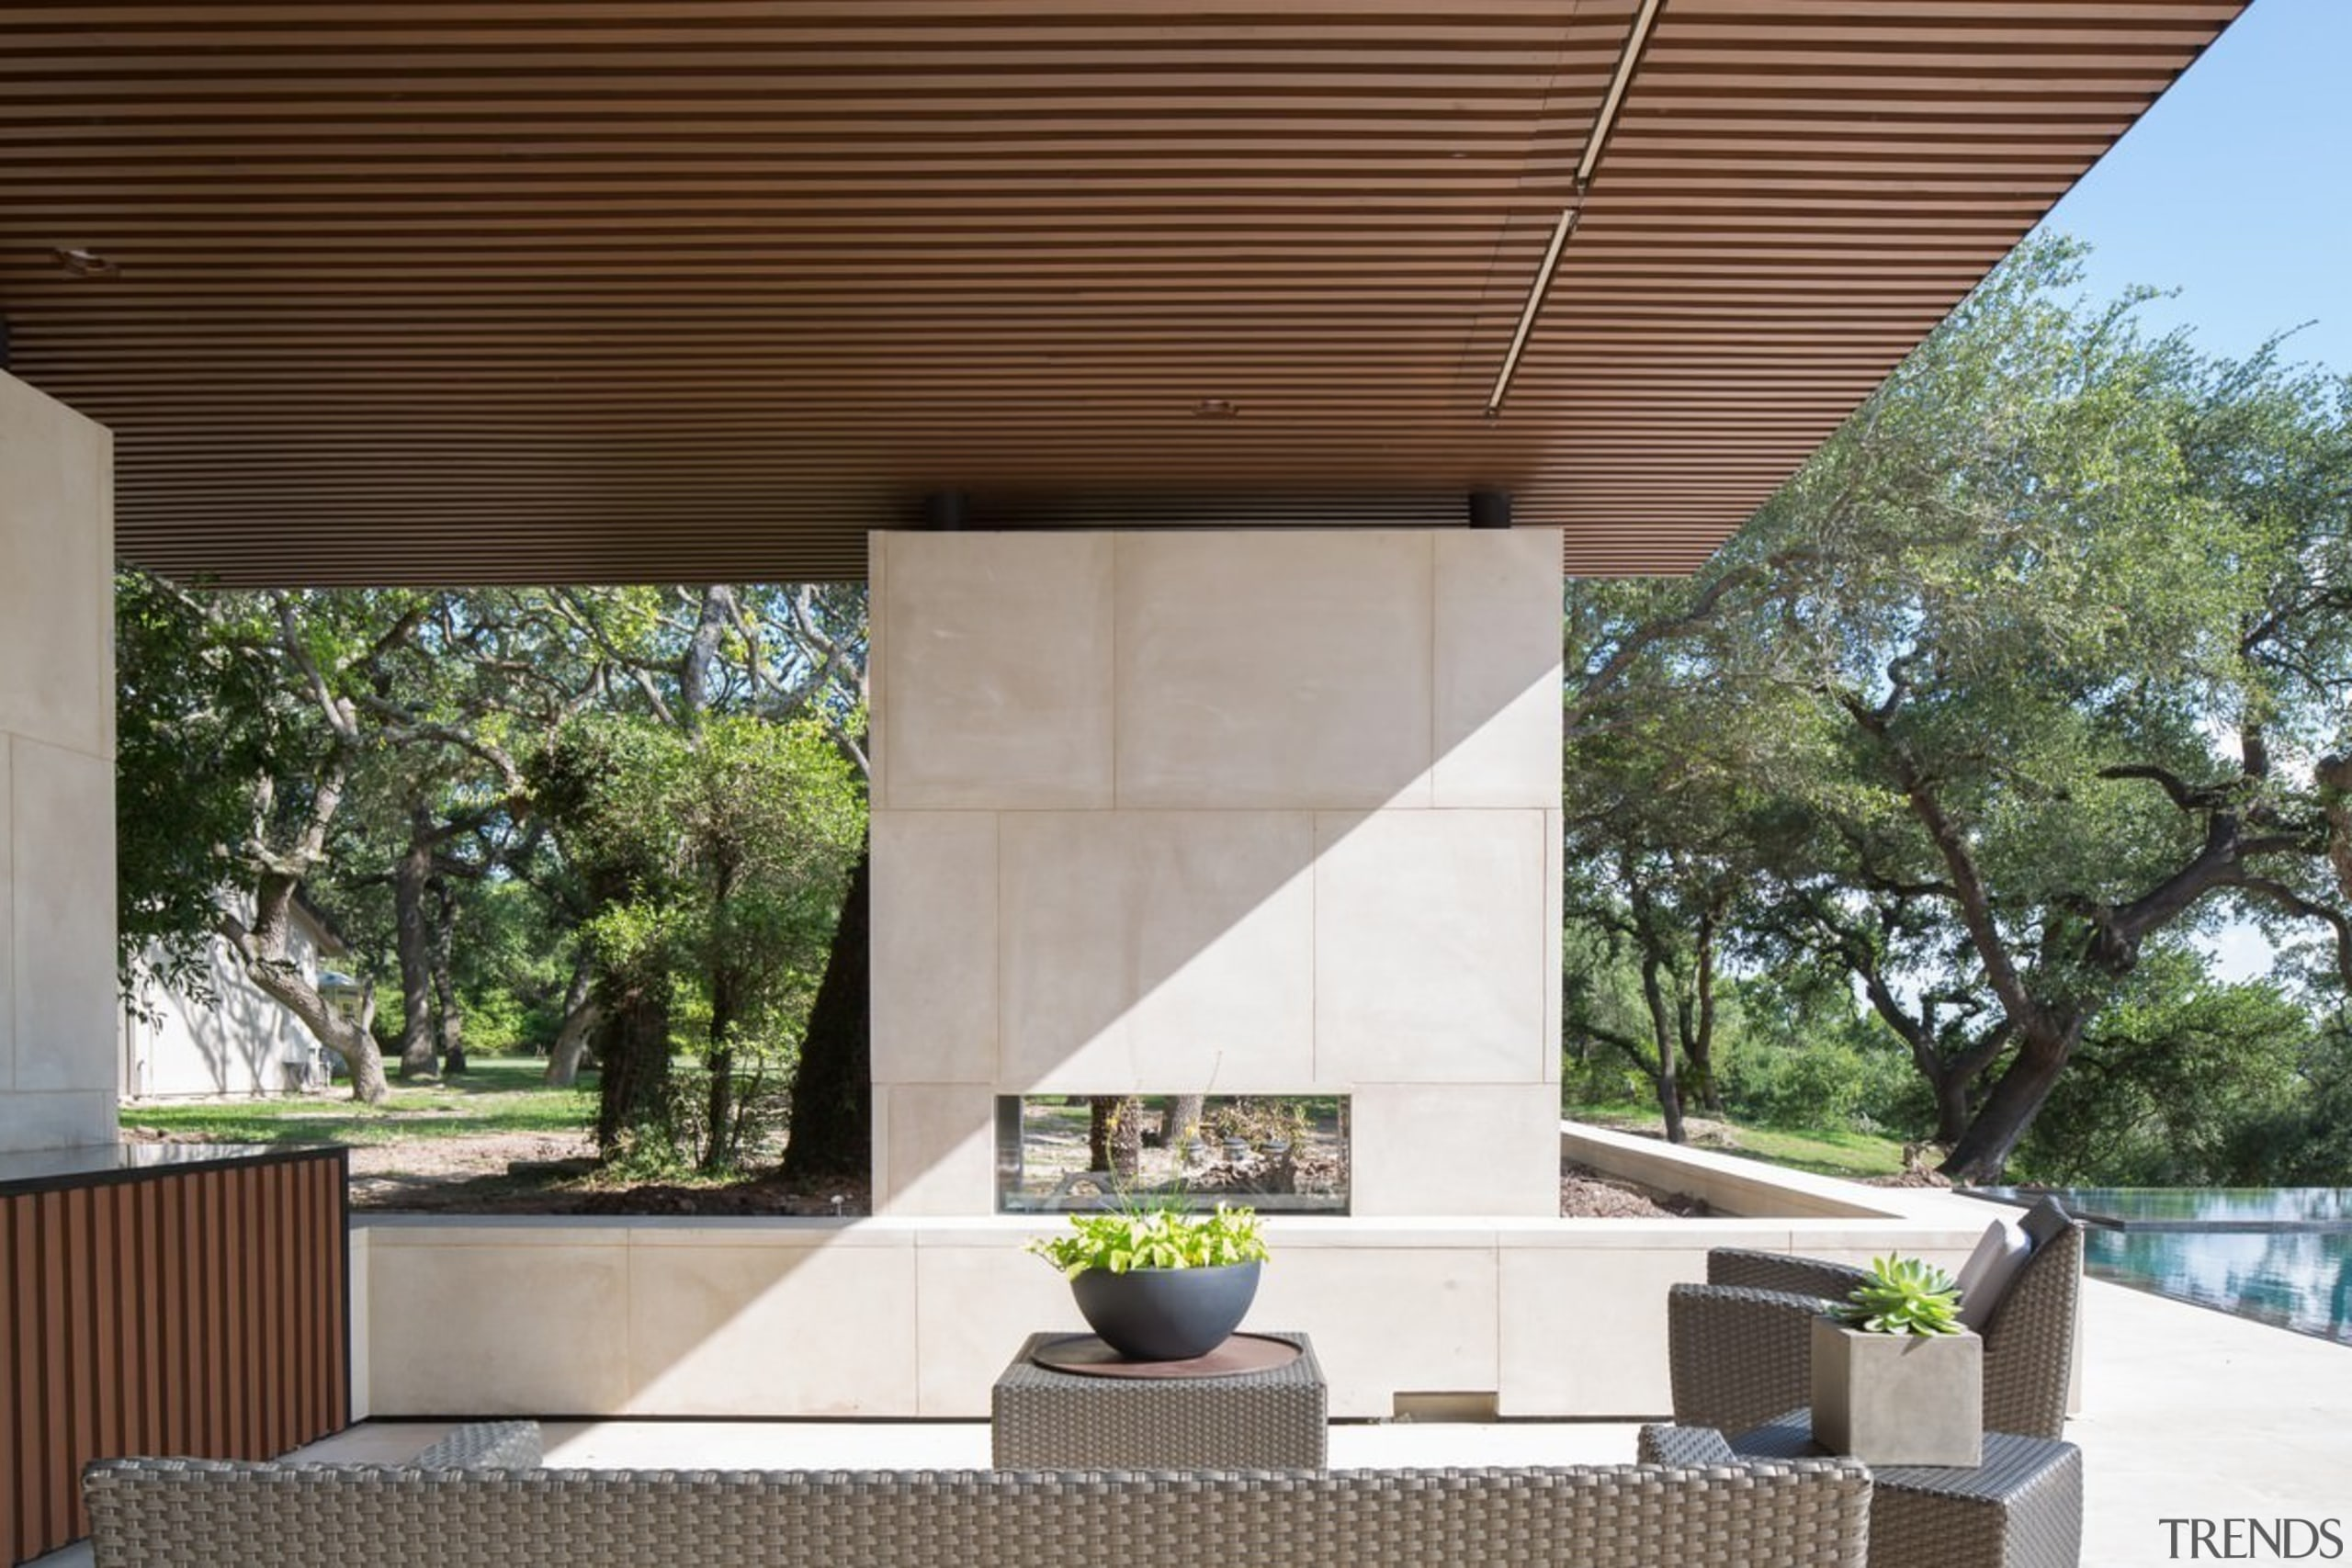 A roof provides respite from the Texas sun architecture, daylighting, house, outdoor structure, patio, roof, shade, brown